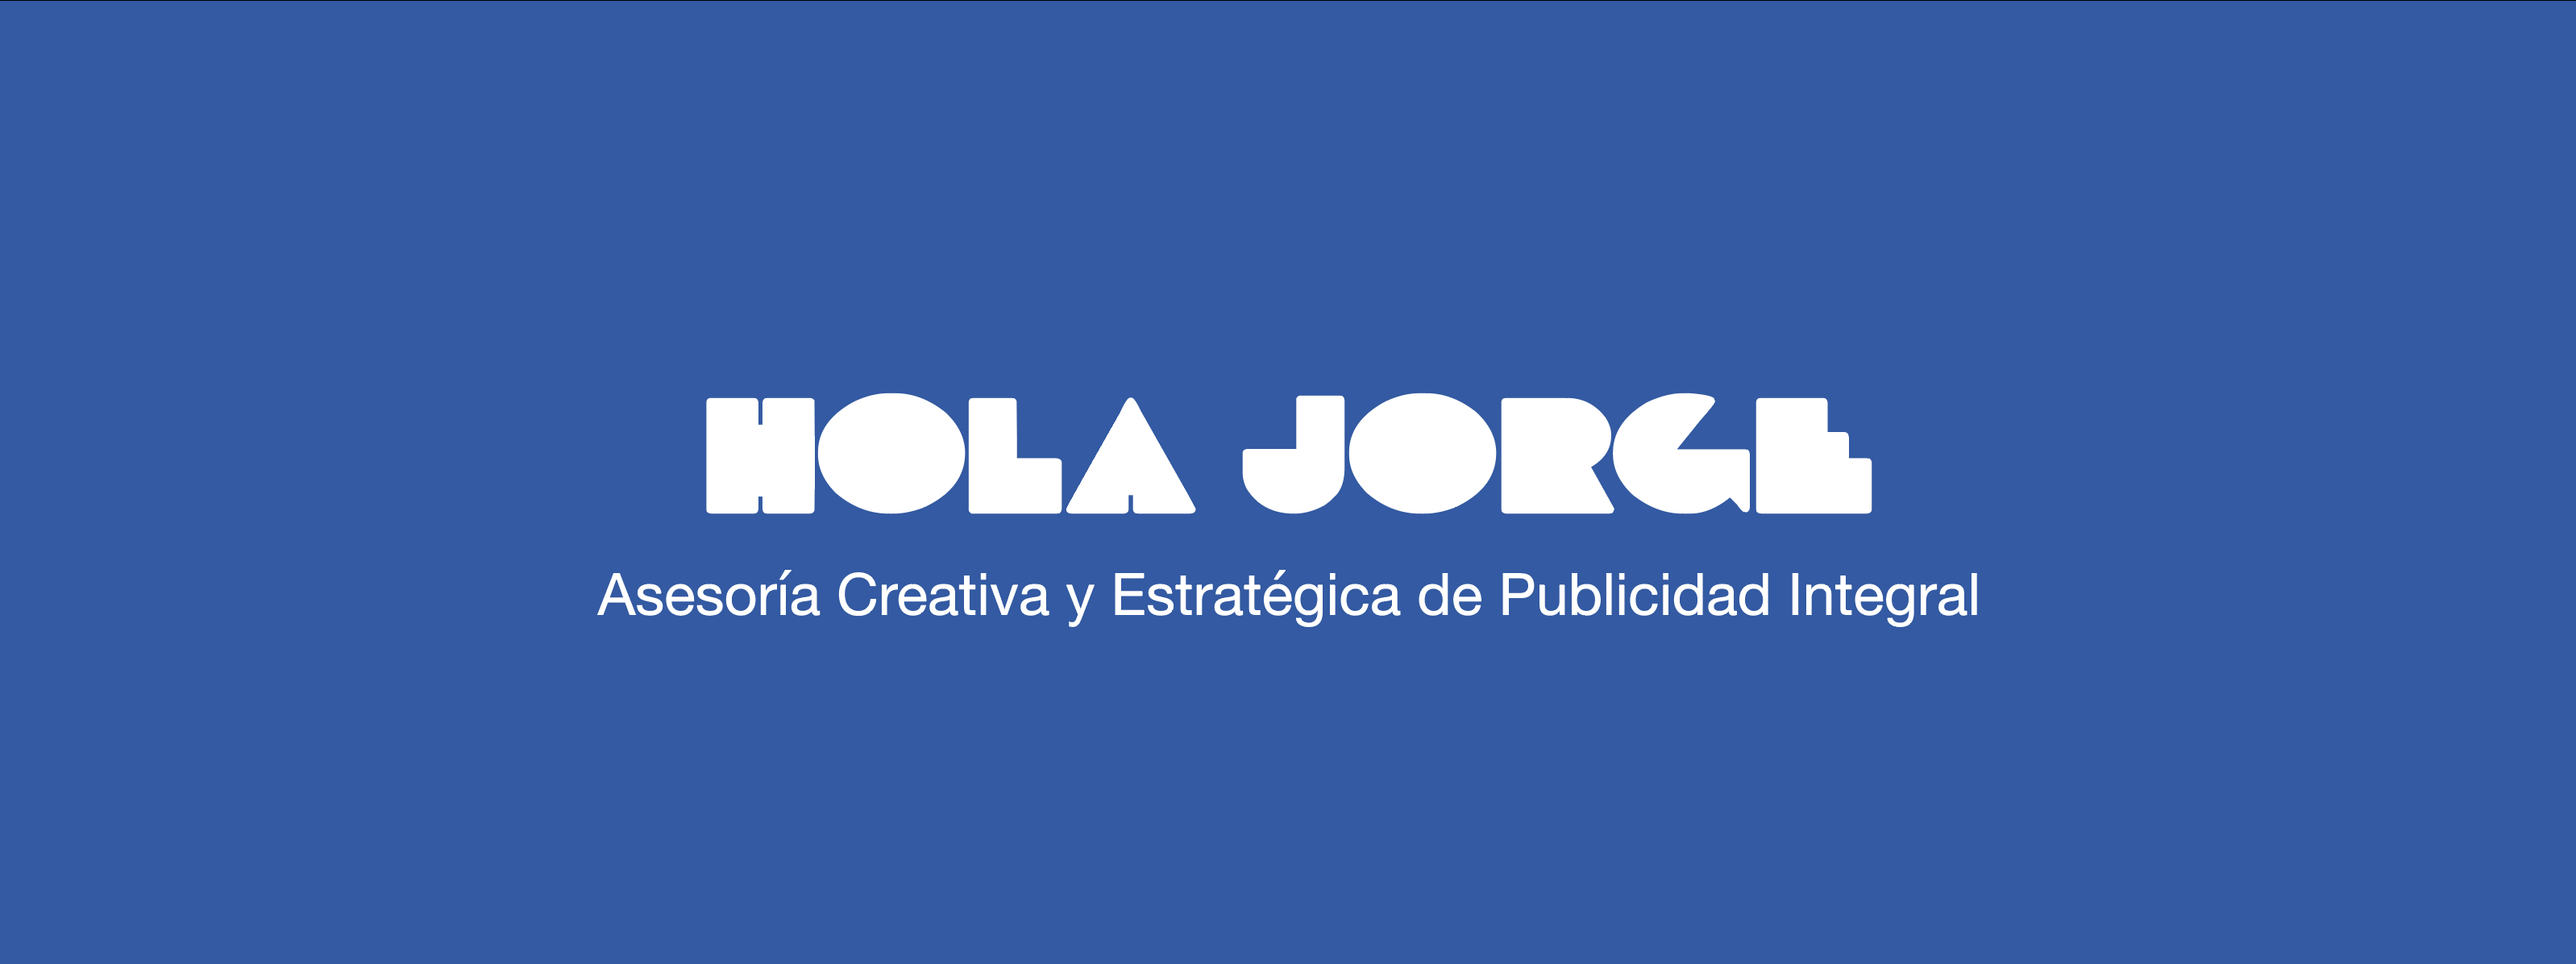 holajorge-publicidad-marketing-rioja